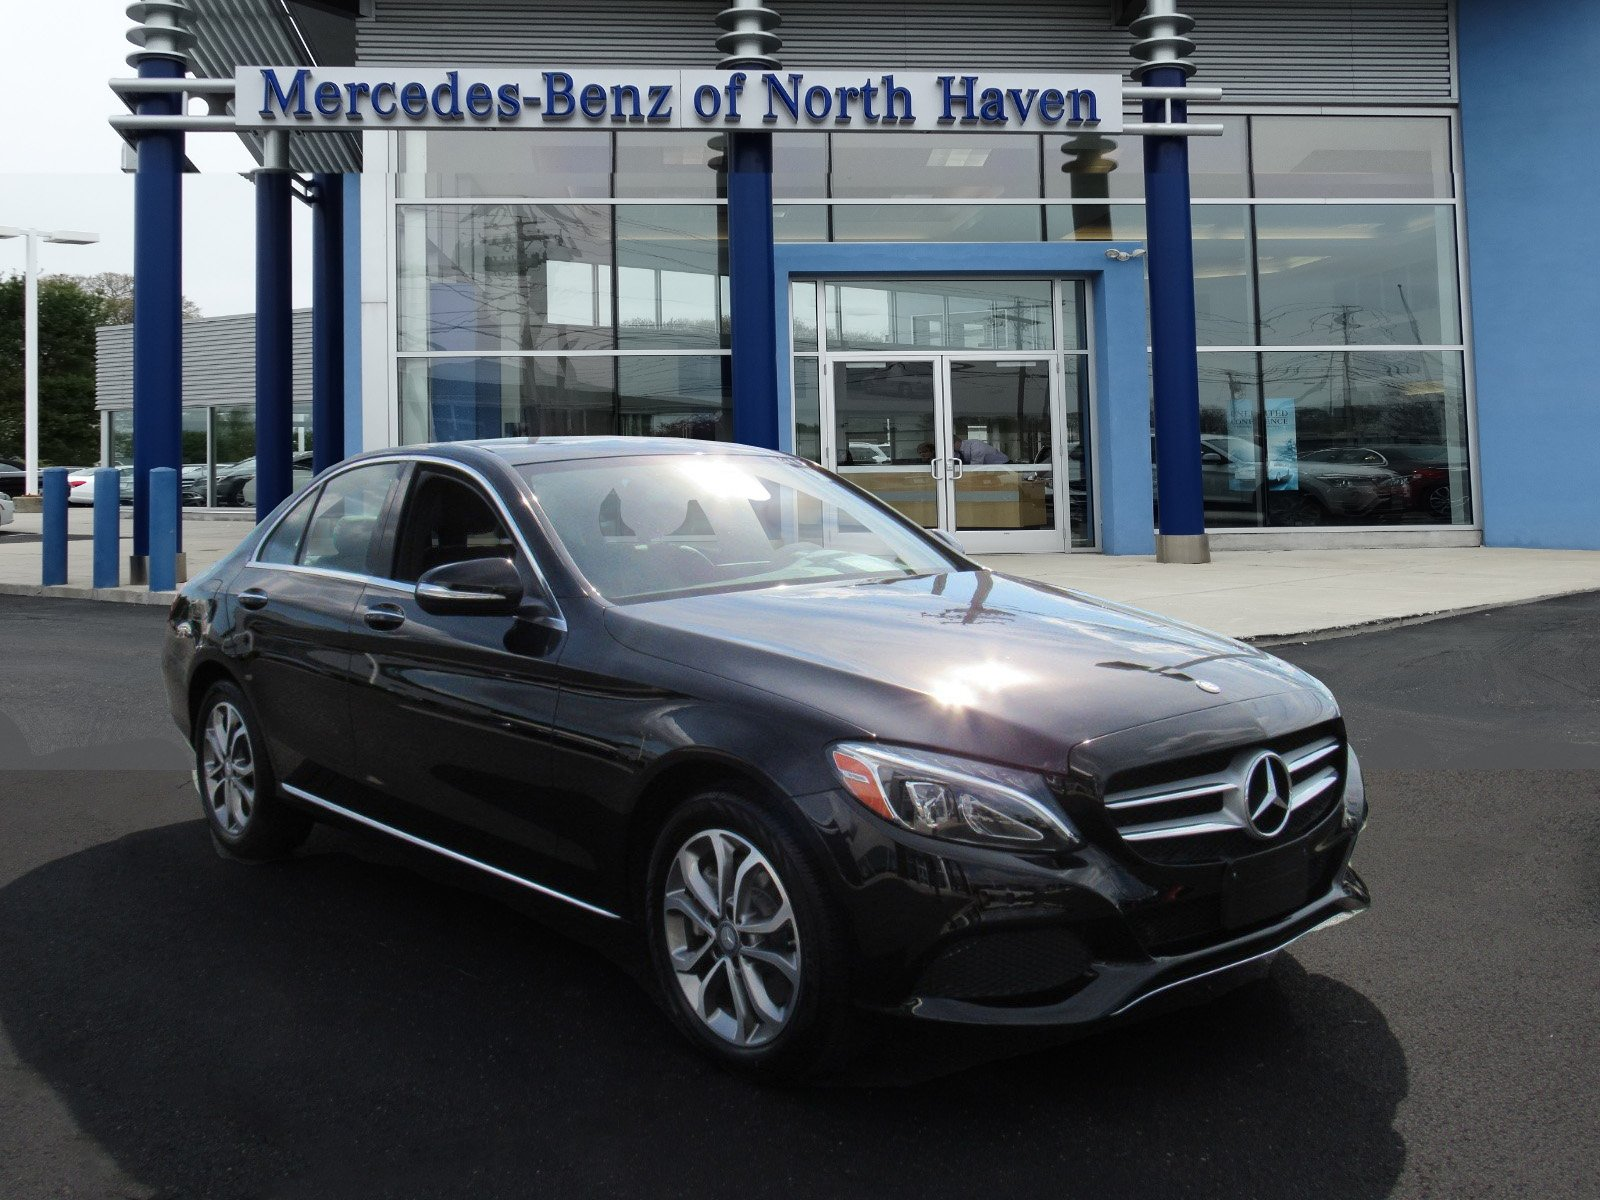 Certified Pre Owned 2015 Mercedes Benz C Class C 300 SEDAN in North